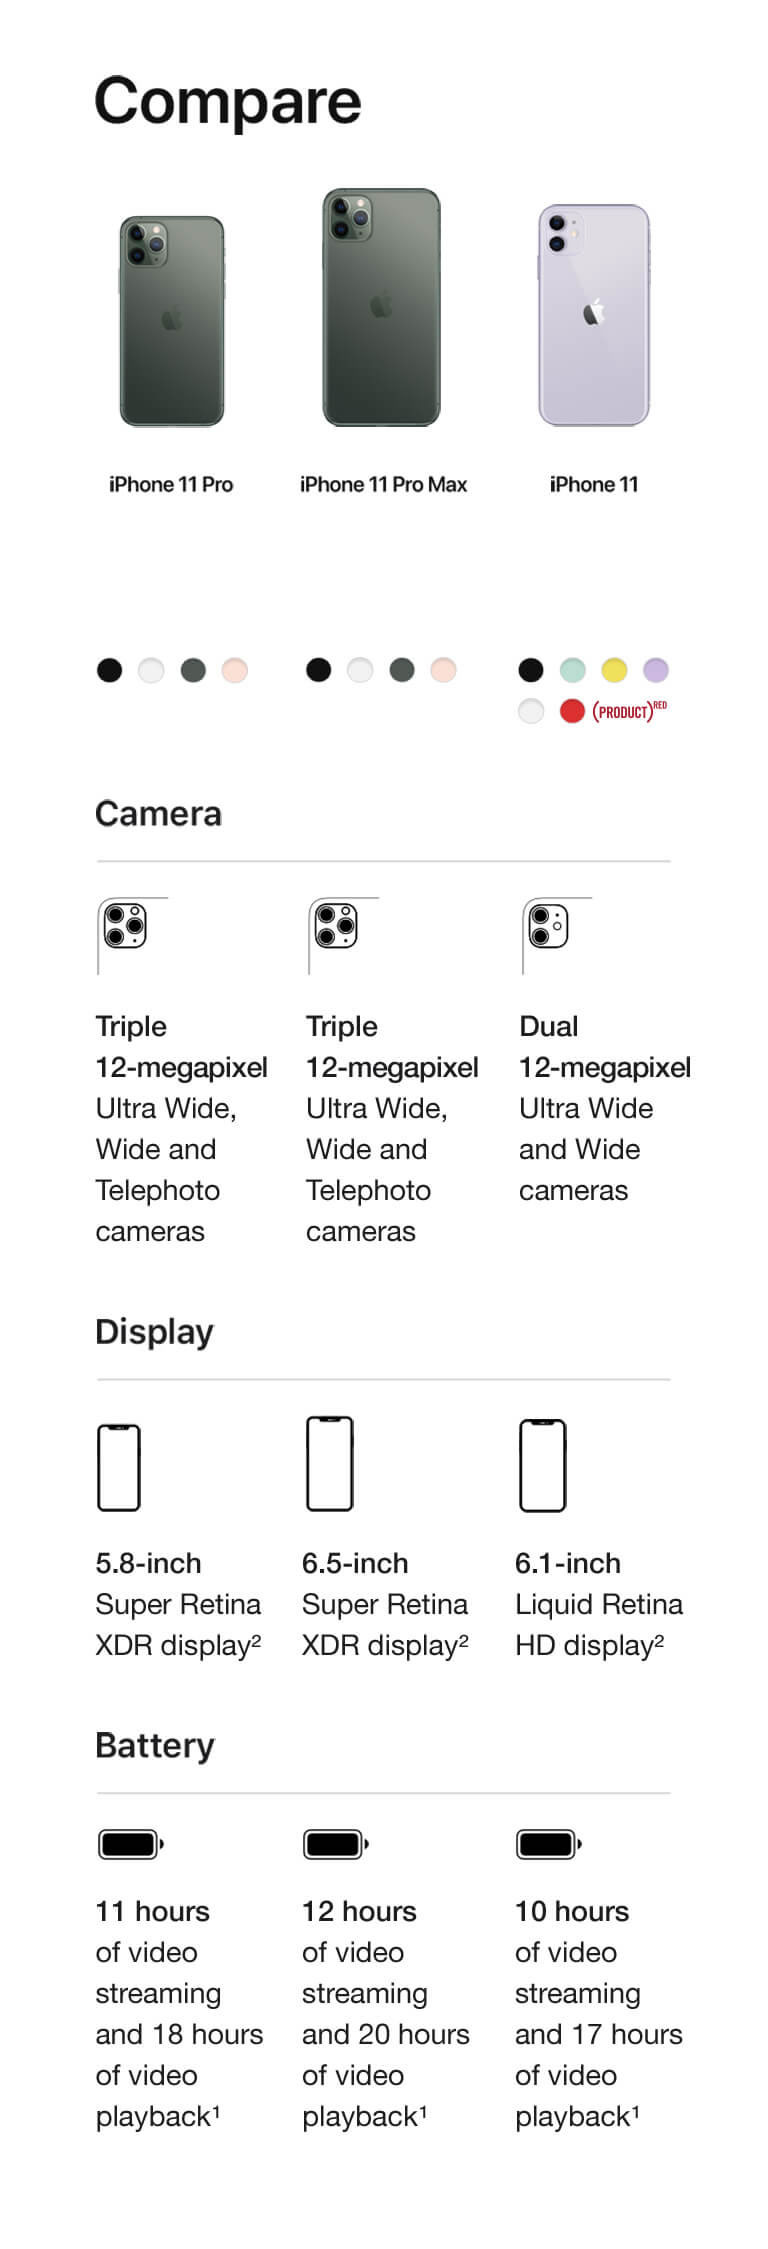 Compare iPhones. Compare cameras. iPhone 11 Pro. Triple 12-megapixel Ultra Wide, Wide and Telephoto cameras. iPhone 11 Pro Max. Triple 12-megapixel Ultra Wide, Wide and Telephoto cameras. iPhone 11. Dual 12-megapixel Ultra Wide and Wide cameras. Compare displays. iPhone 11 Pro. 5.8-inch Super Retina XDR display. iPhone 11 Pro Max. 6.5-inch Super Retina XDR display. iPhone 11. 6.1-inch Liquid Retina HD display. Compare Batteries. iPhone 11 Pro. 11 hours of video streaming and 18 hours of video playback. iPhone 11 Pro Max. 12 hours of video streaming and 20 hours of video playback. iPhone 11. 10 hours of video streaming and 17 hours of video playback.